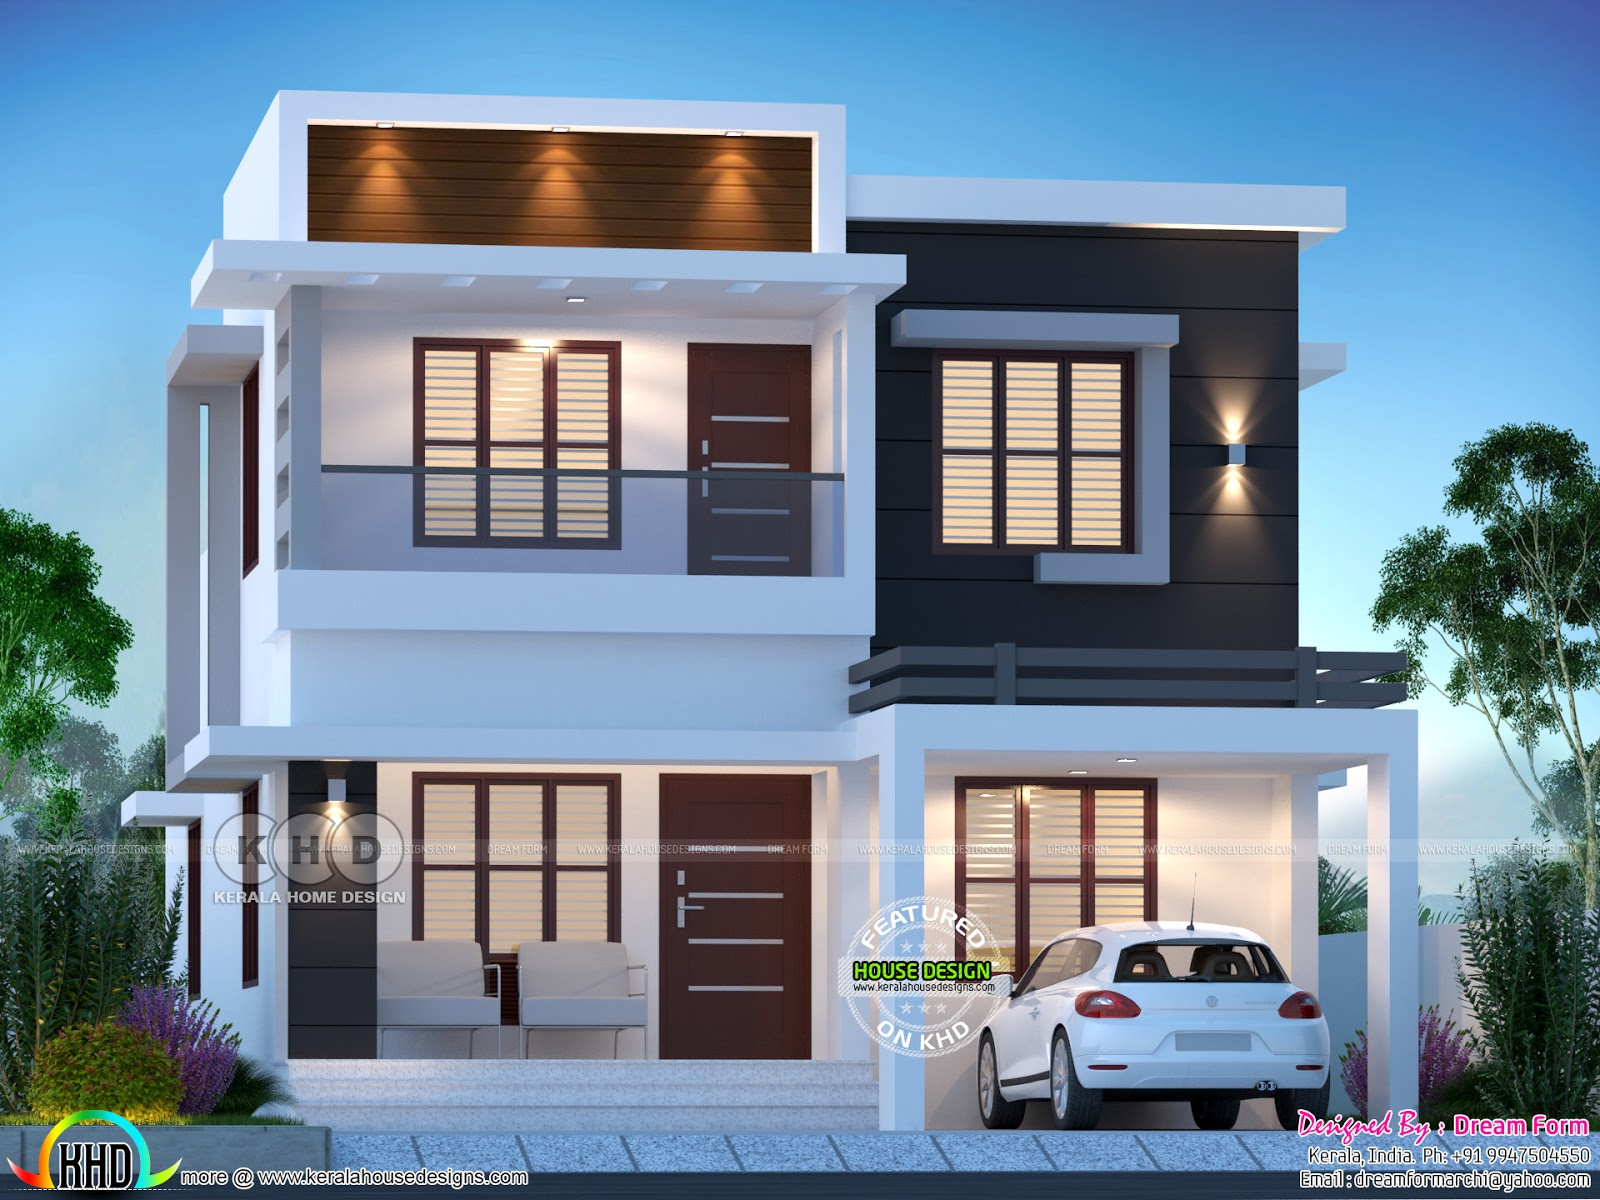 4 bedroom 1775 sq.ft modern home design - Kerala home ...